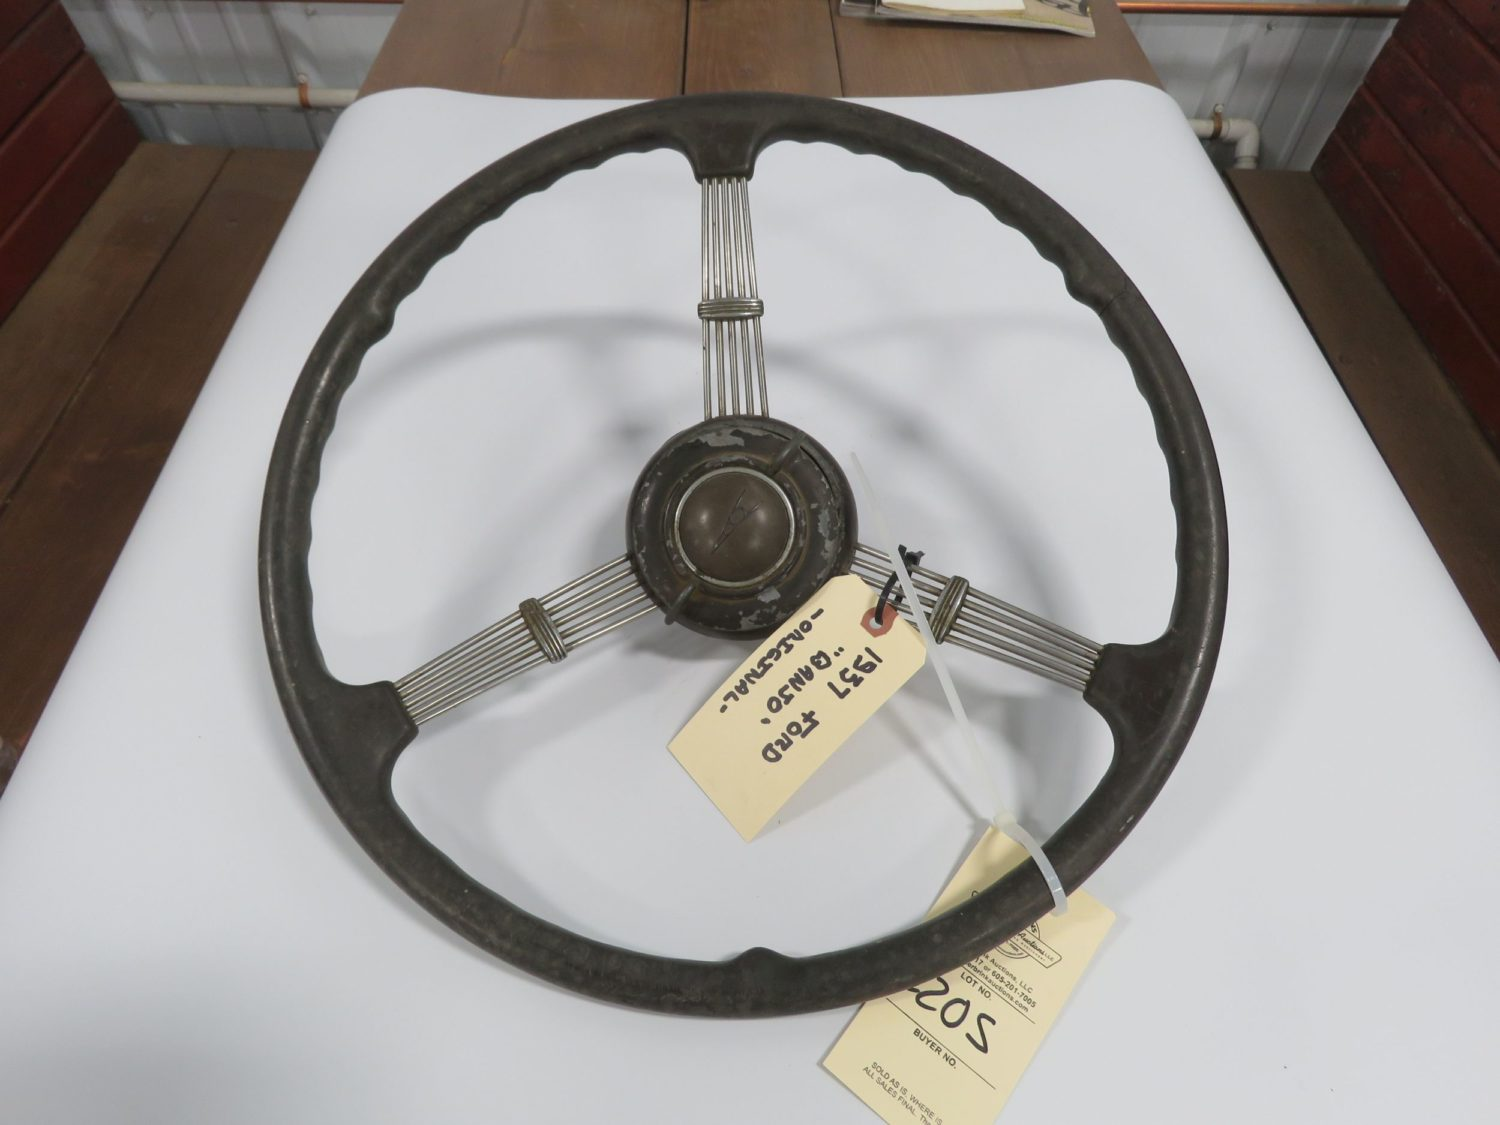 1937 Ford Banjo Steering Wheel w/Horn Button - Image 1